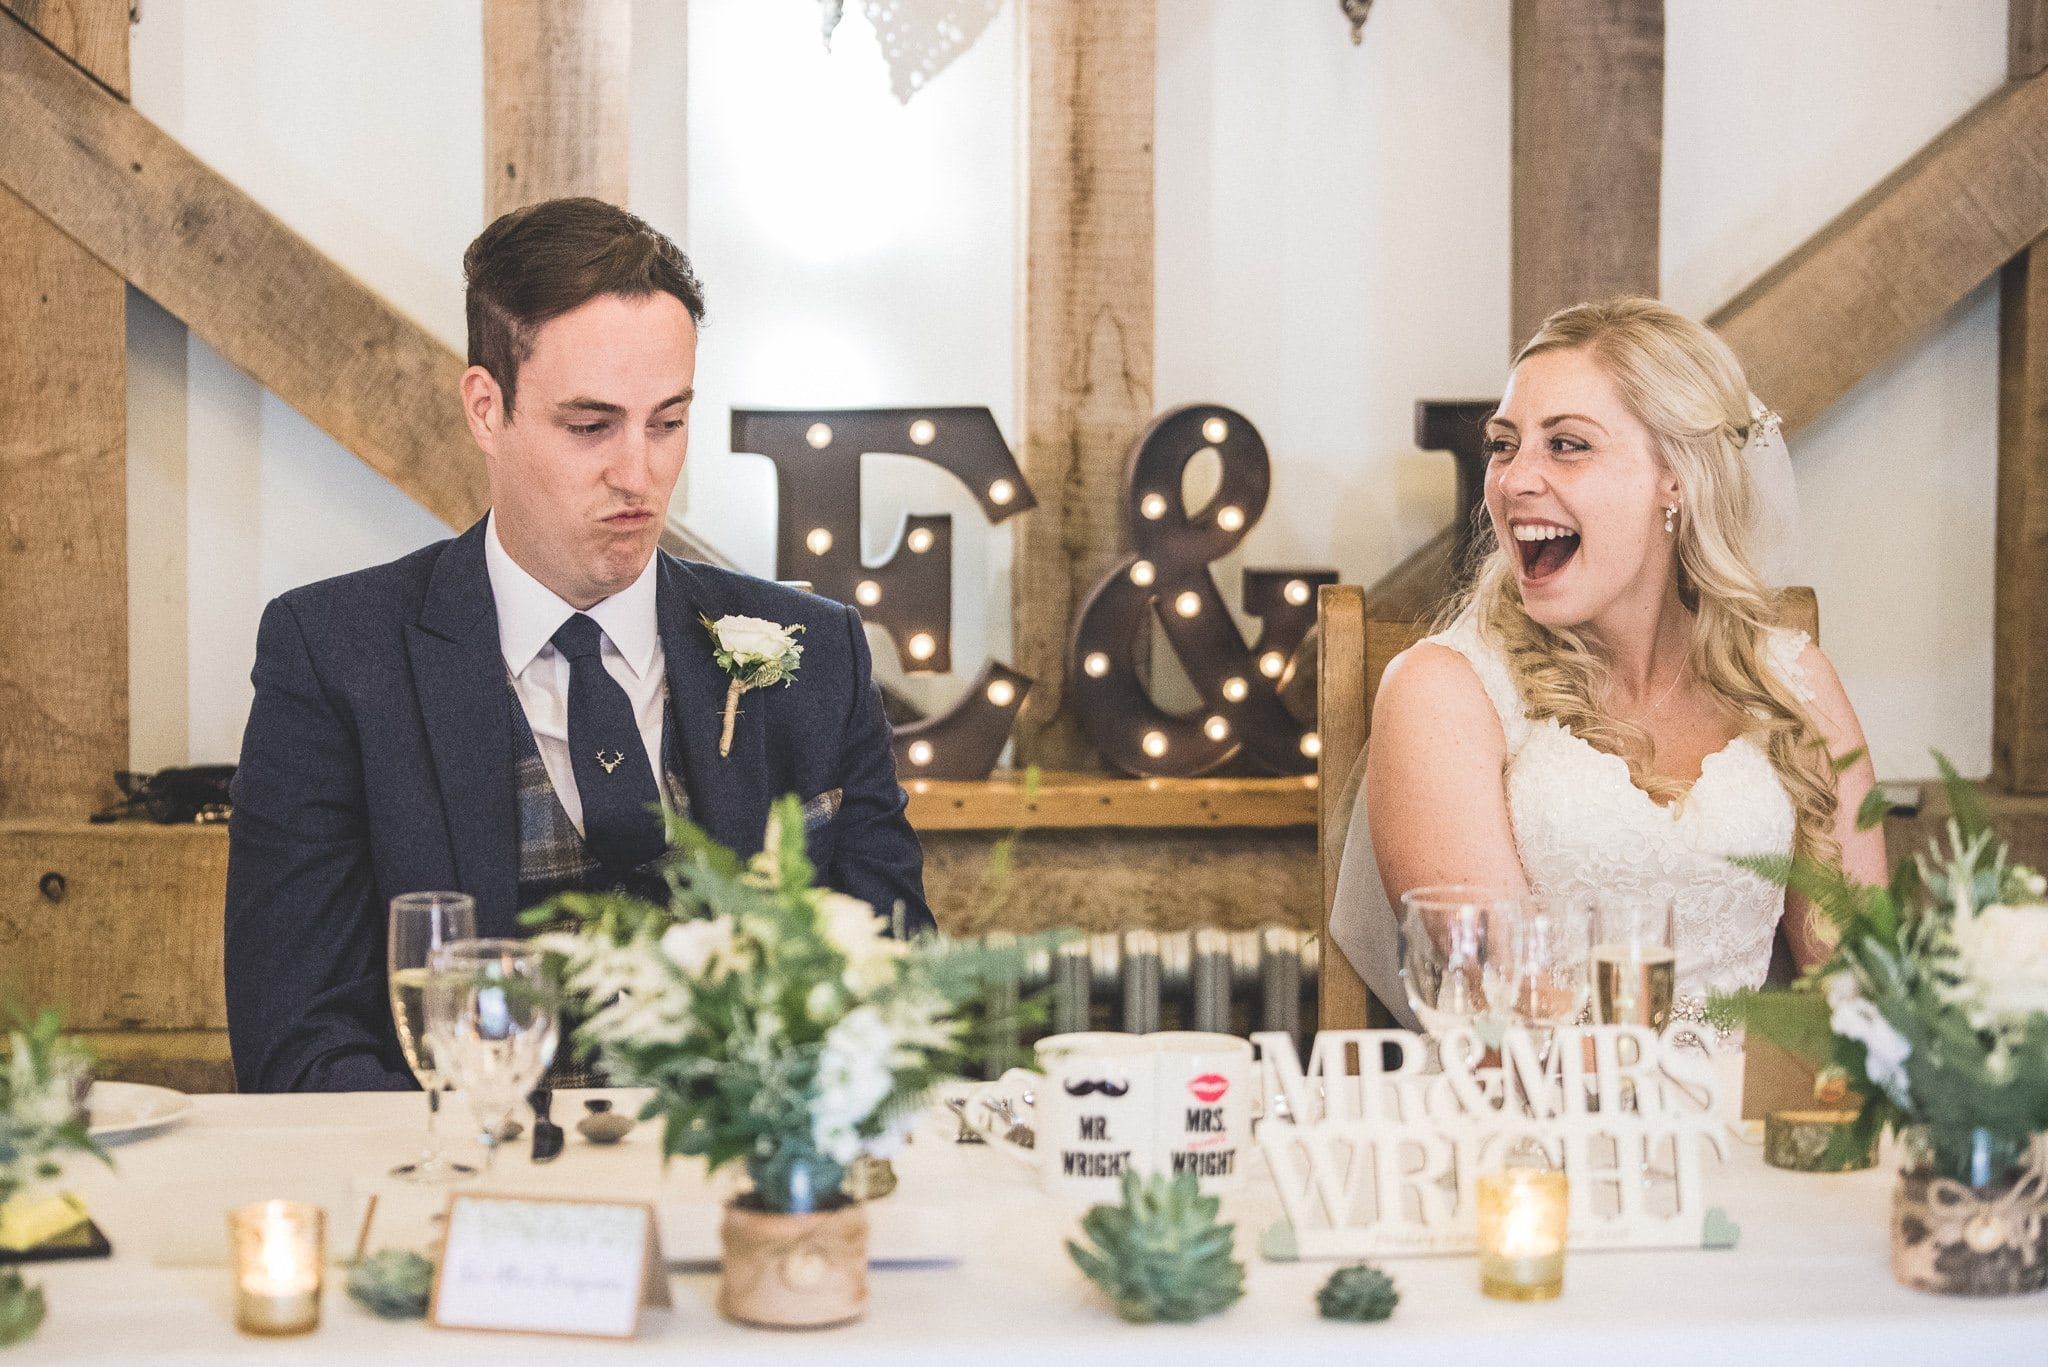 Philip pouts as Emma bursts out laughing during the speeches